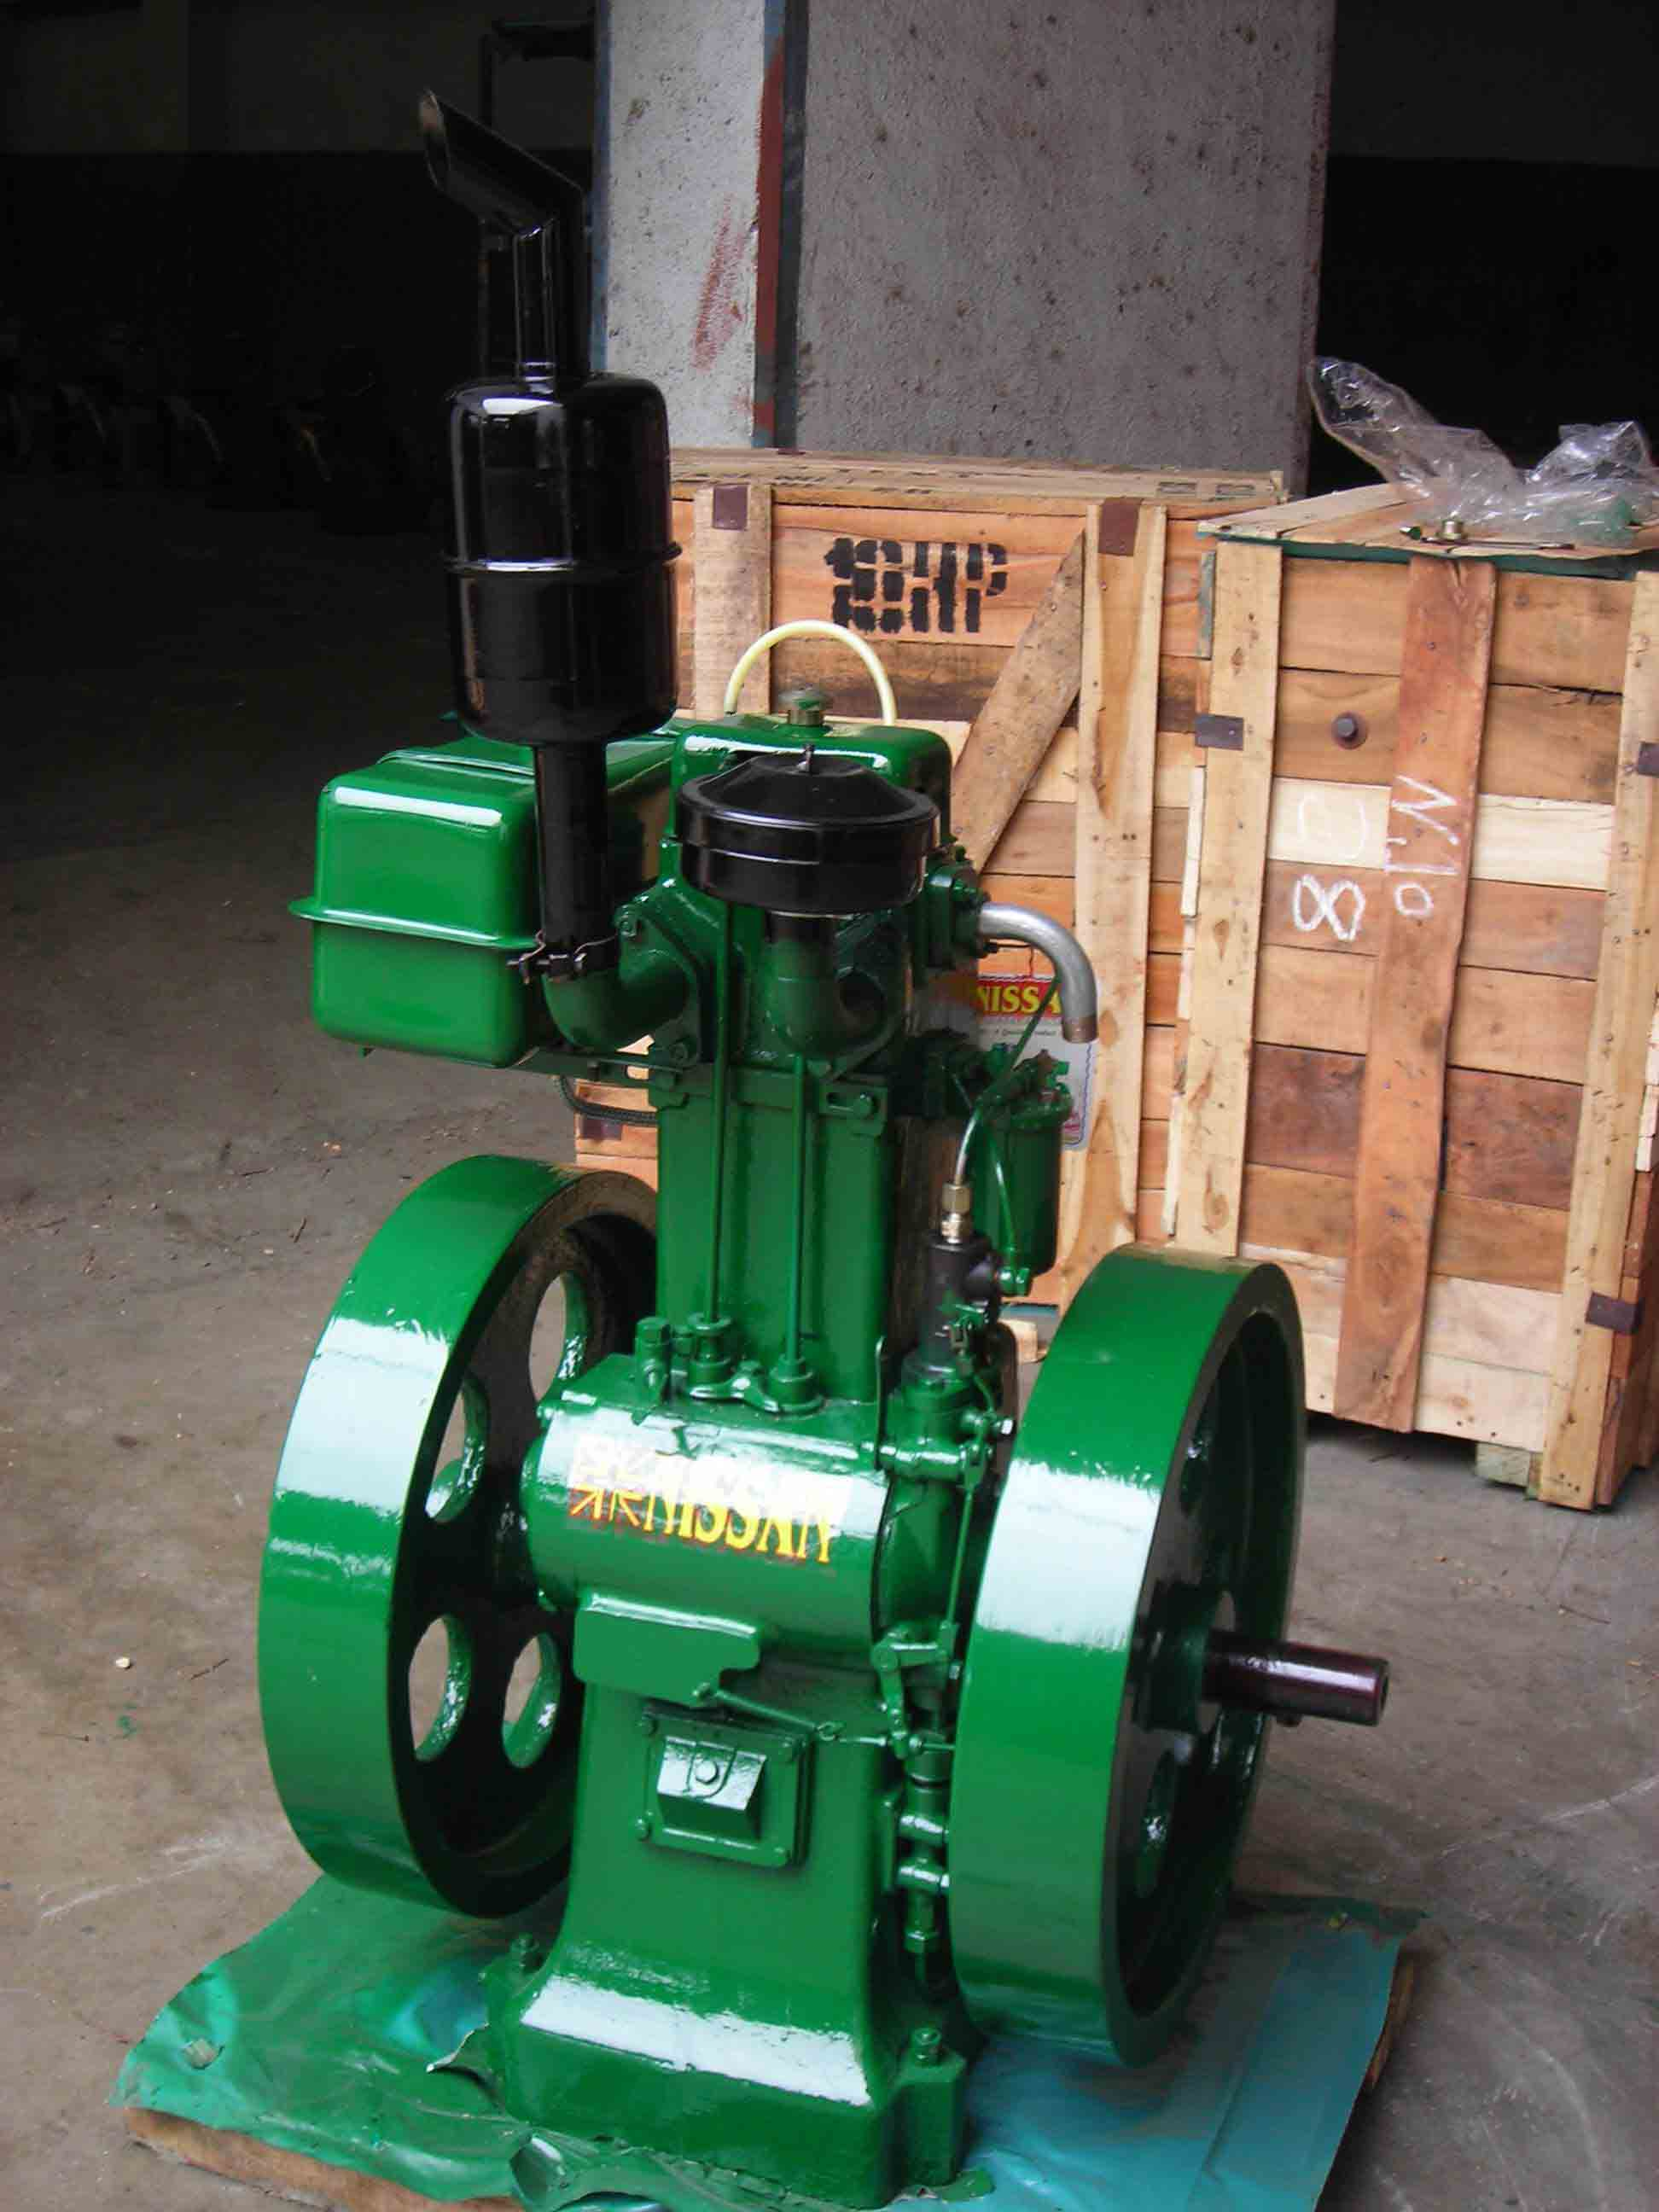 India 12 Hp Diesel Engine, India 12 Hp Diesel Engine Manufacturers and  Suppliers on Alibaba.com